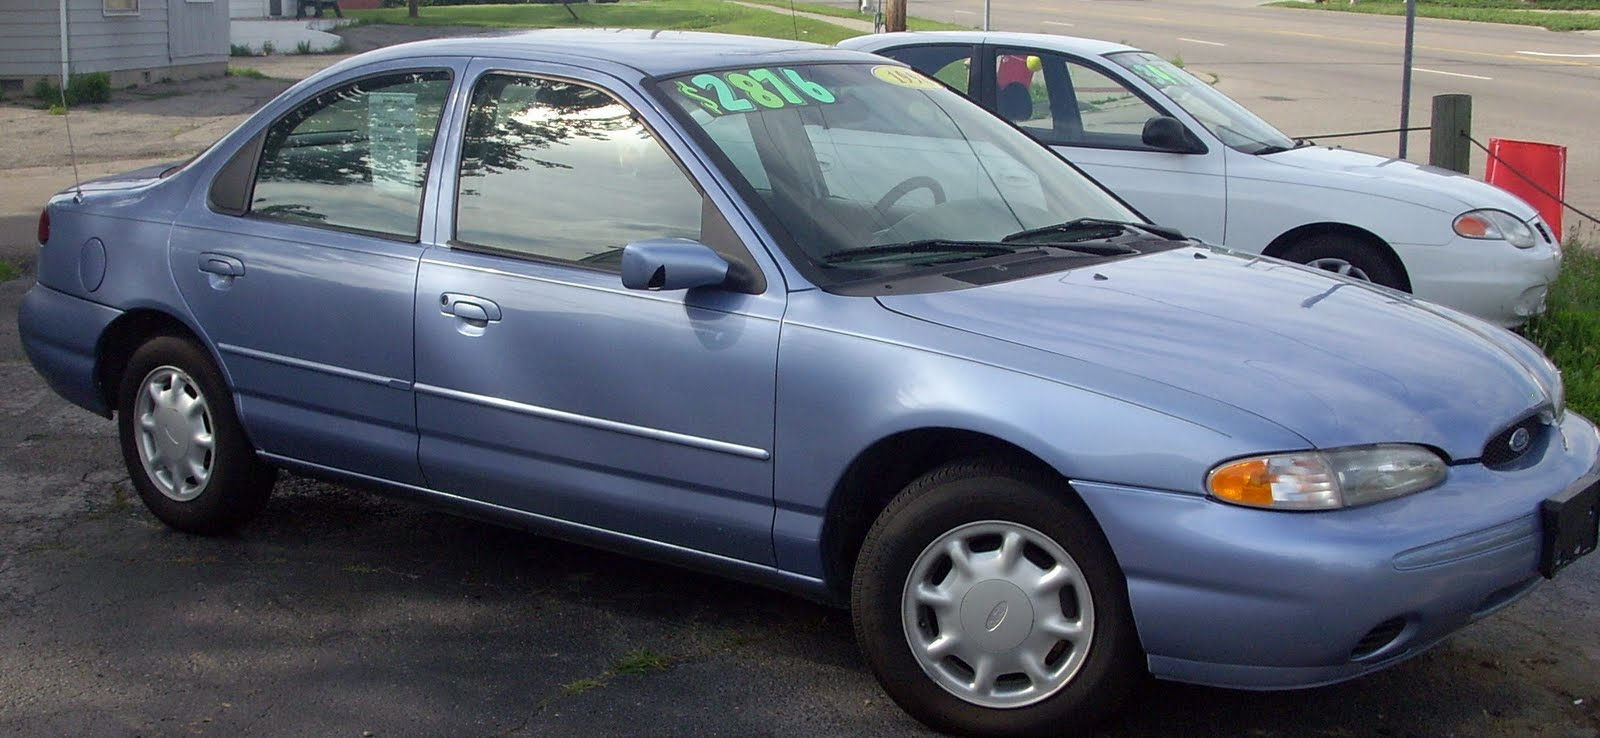 1996 Ford Contour #17